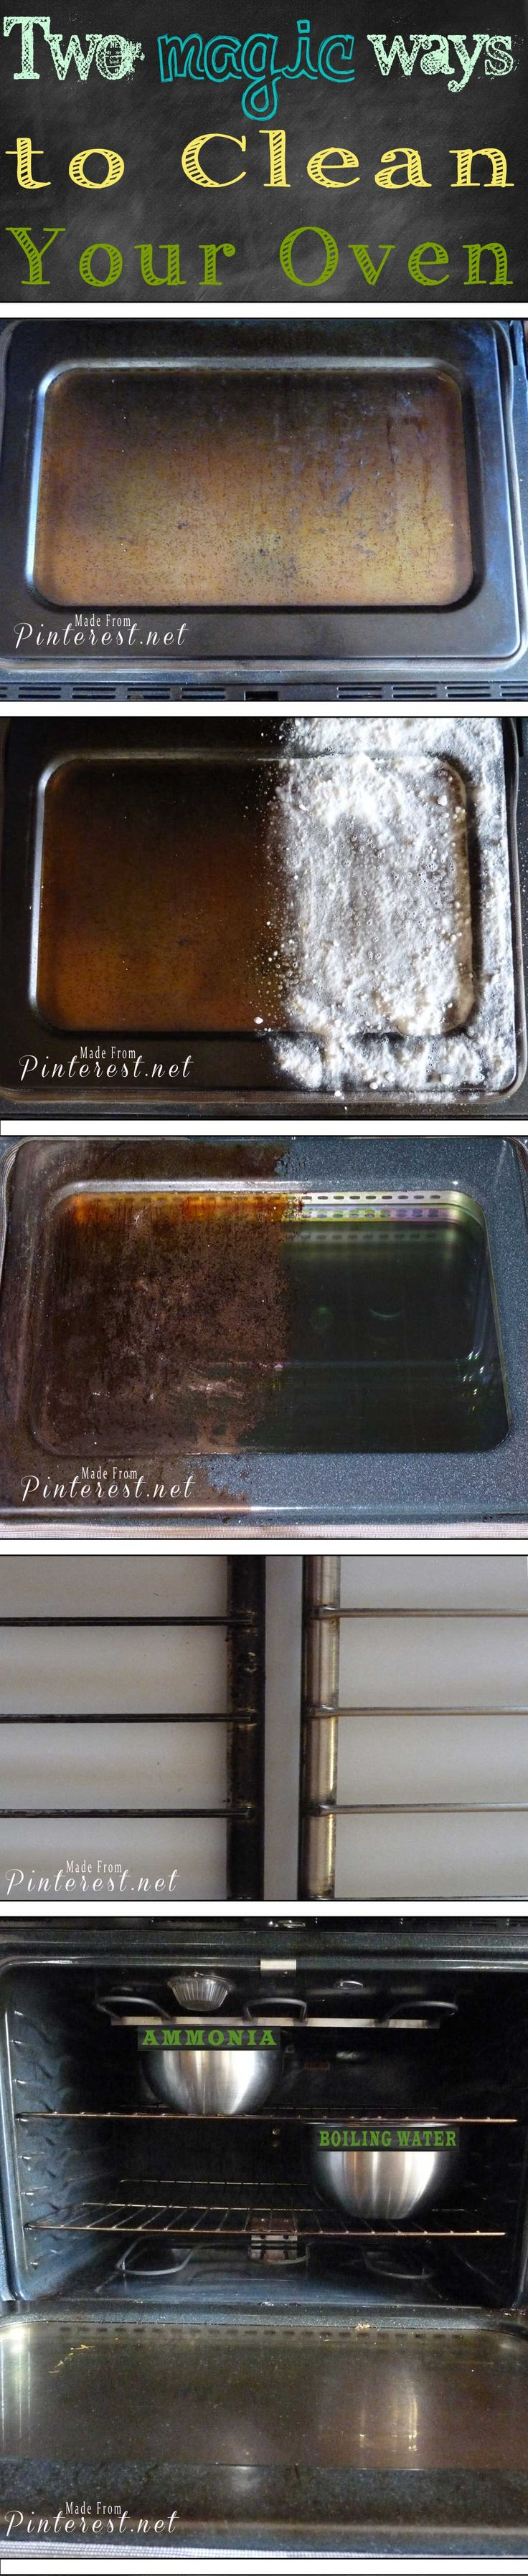 Magic #Oven Cleaning Method - If I had known it was this easy to get my disgusting dirty oven clean so fast and easy I would have cleaned it much sooner!